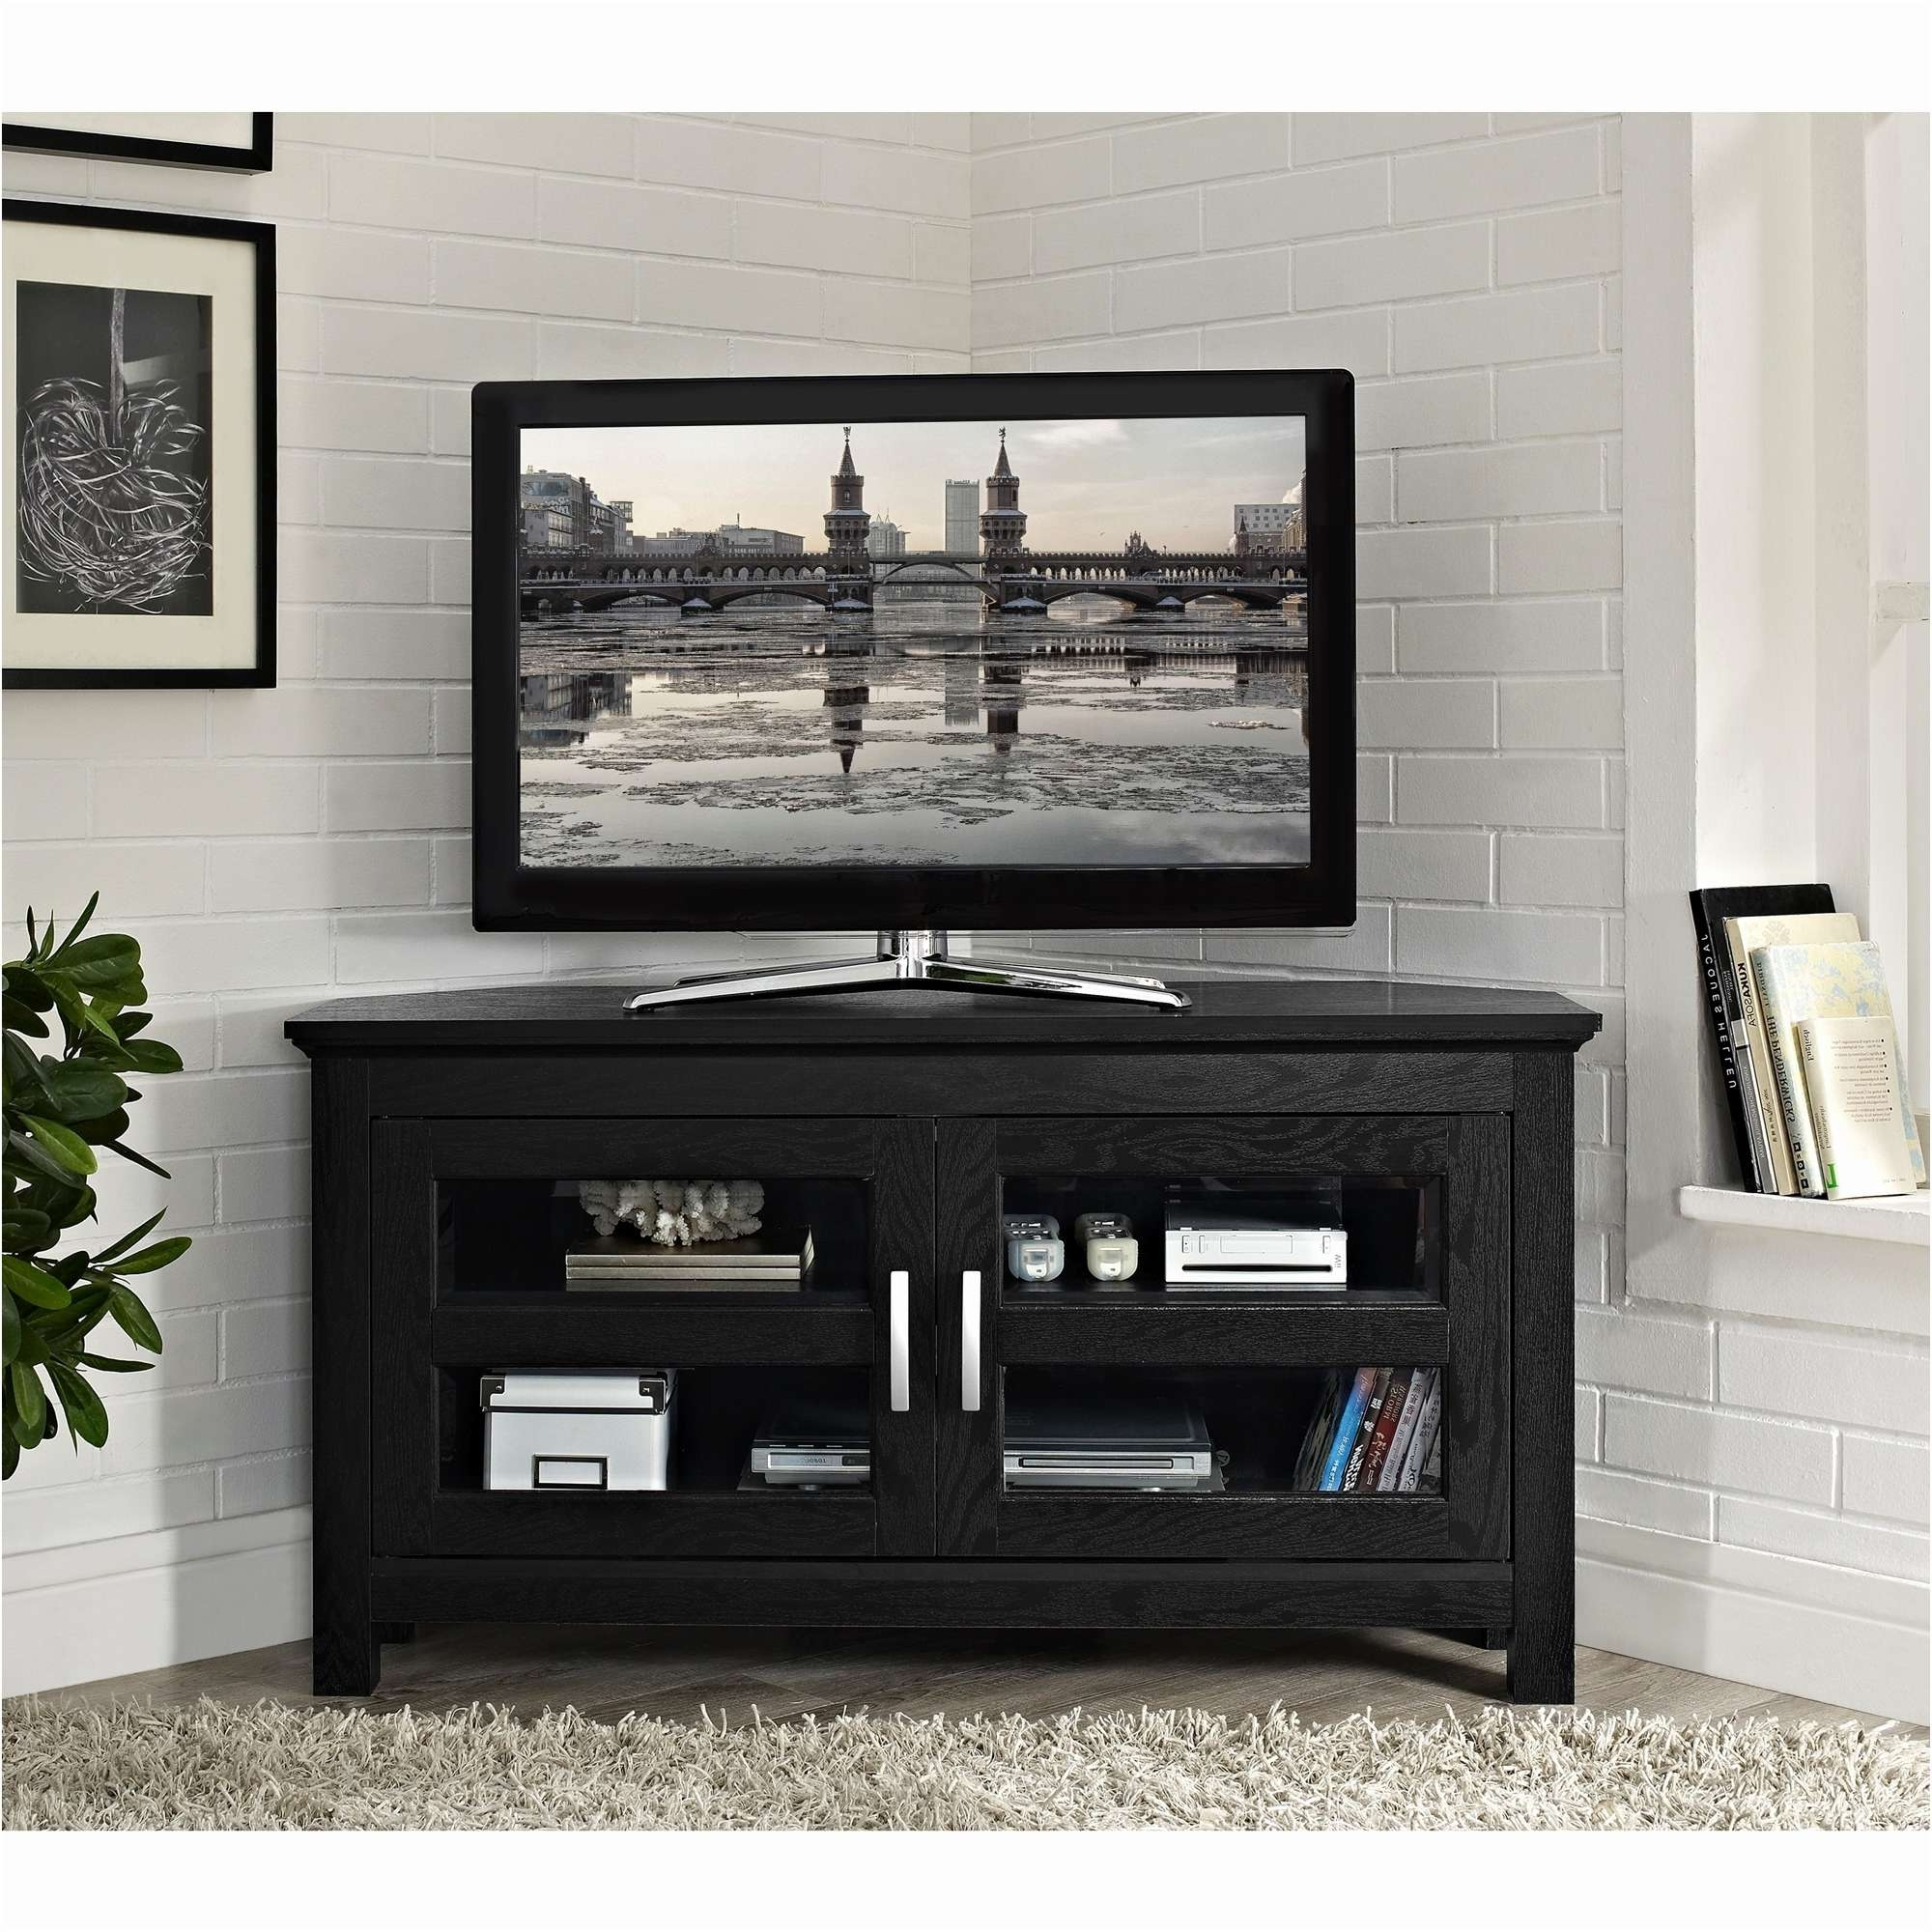 Living Room Tv Stands Luxury Floating Tv Stand Living Room With Luxury Tv Stands (View 8 of 15)